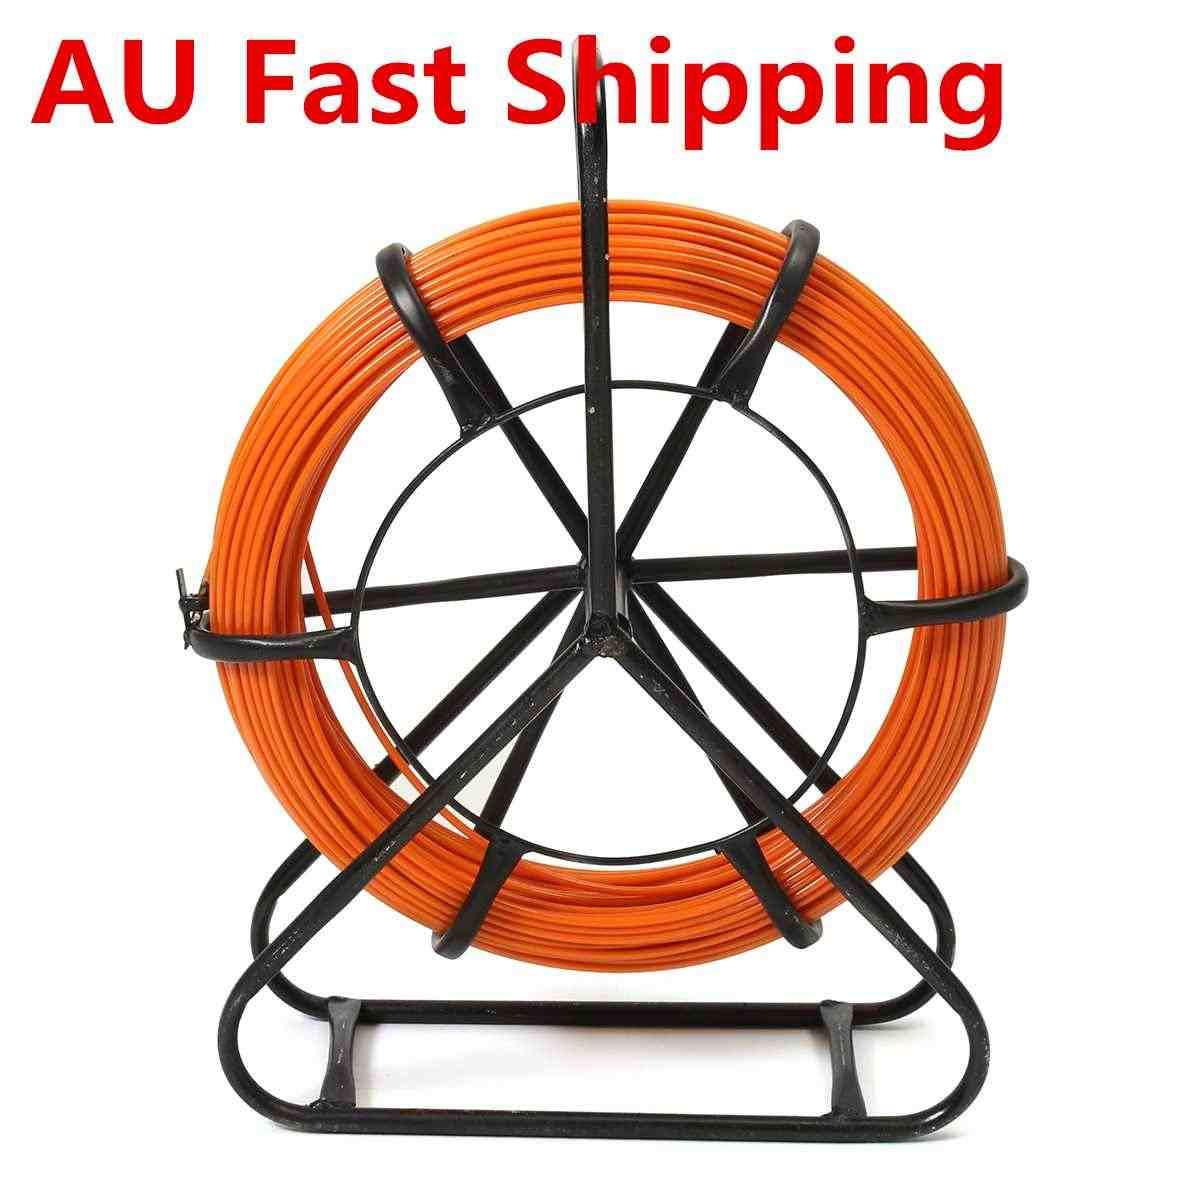 4.5mm 100M Fiberglass Wire Cable Running Rod Snake Fish Rodder Puller Flexi Lead Electric Fiberglass Wire Cable Running Rod